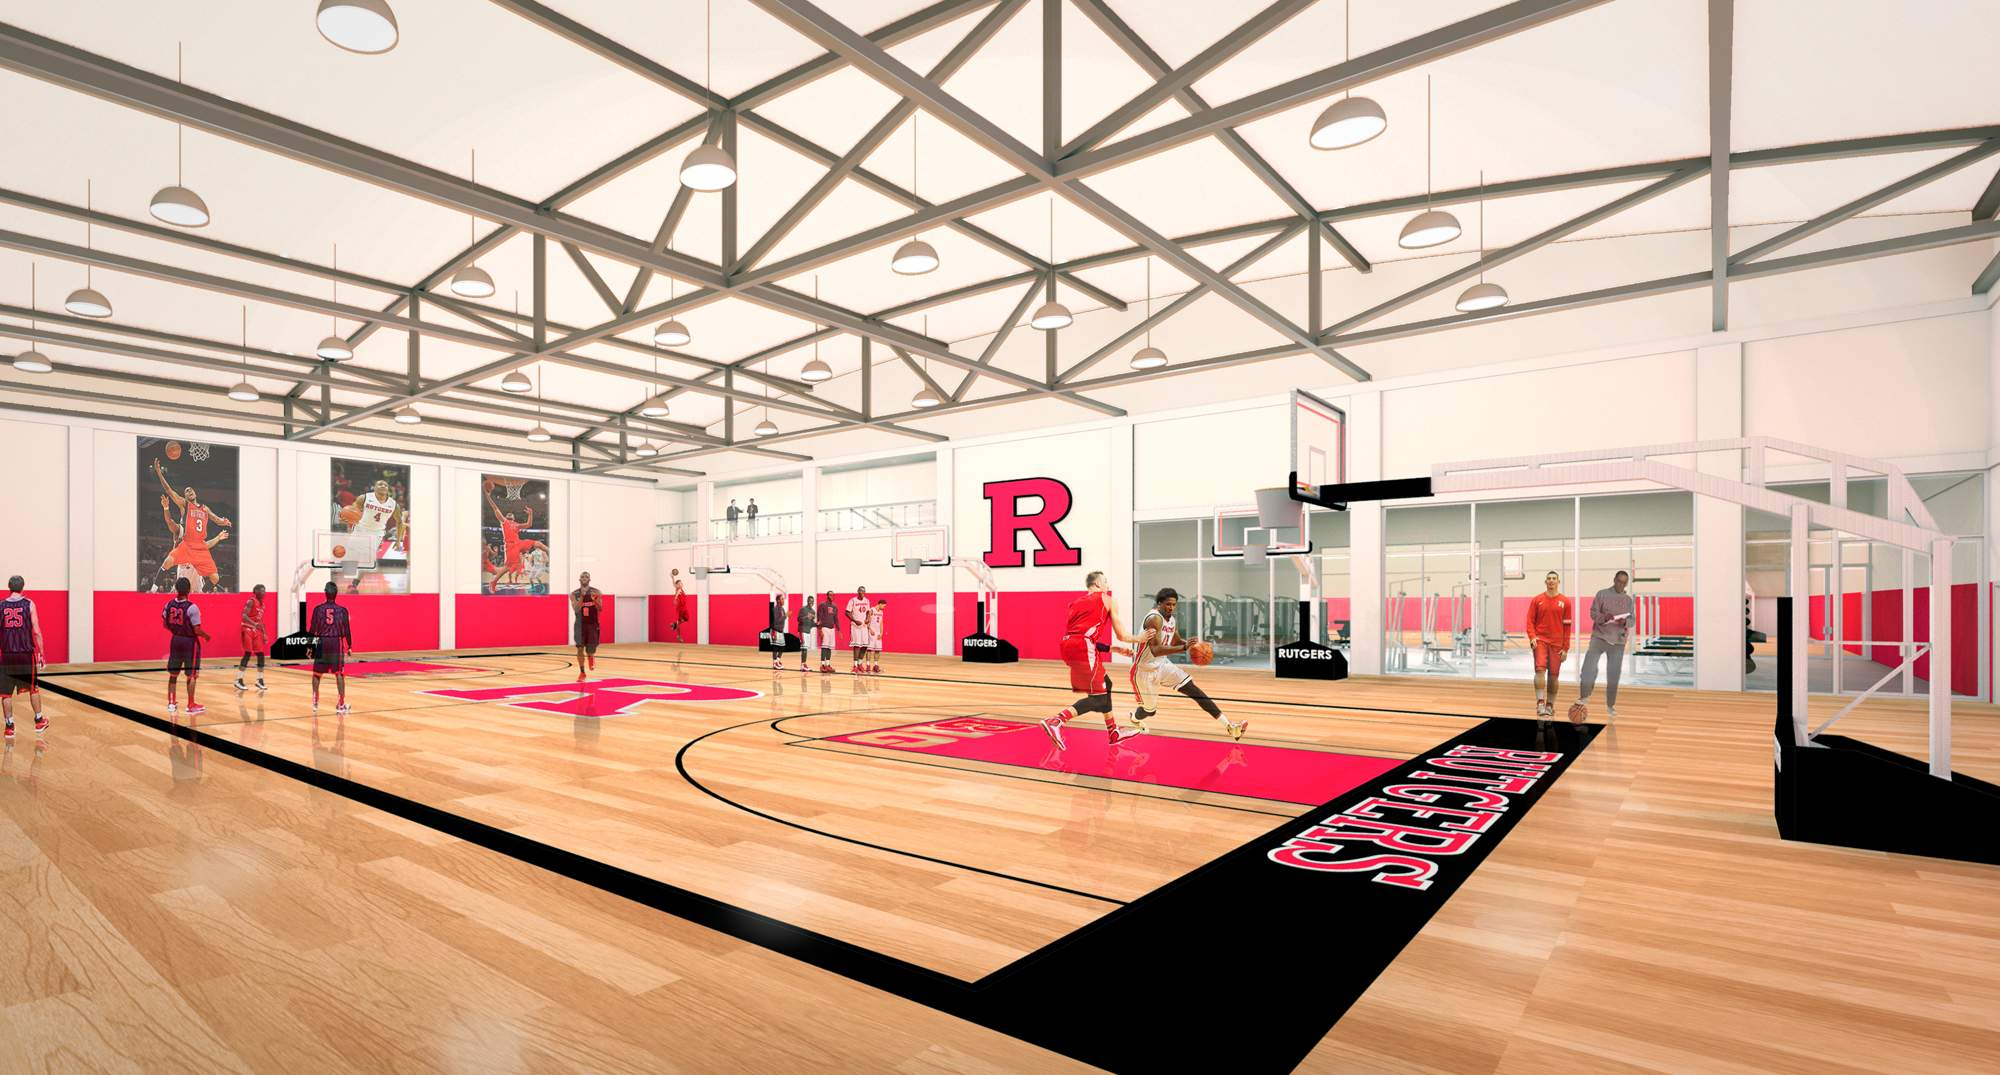 A rendering of the planned multisport training complex at Rutgers University.